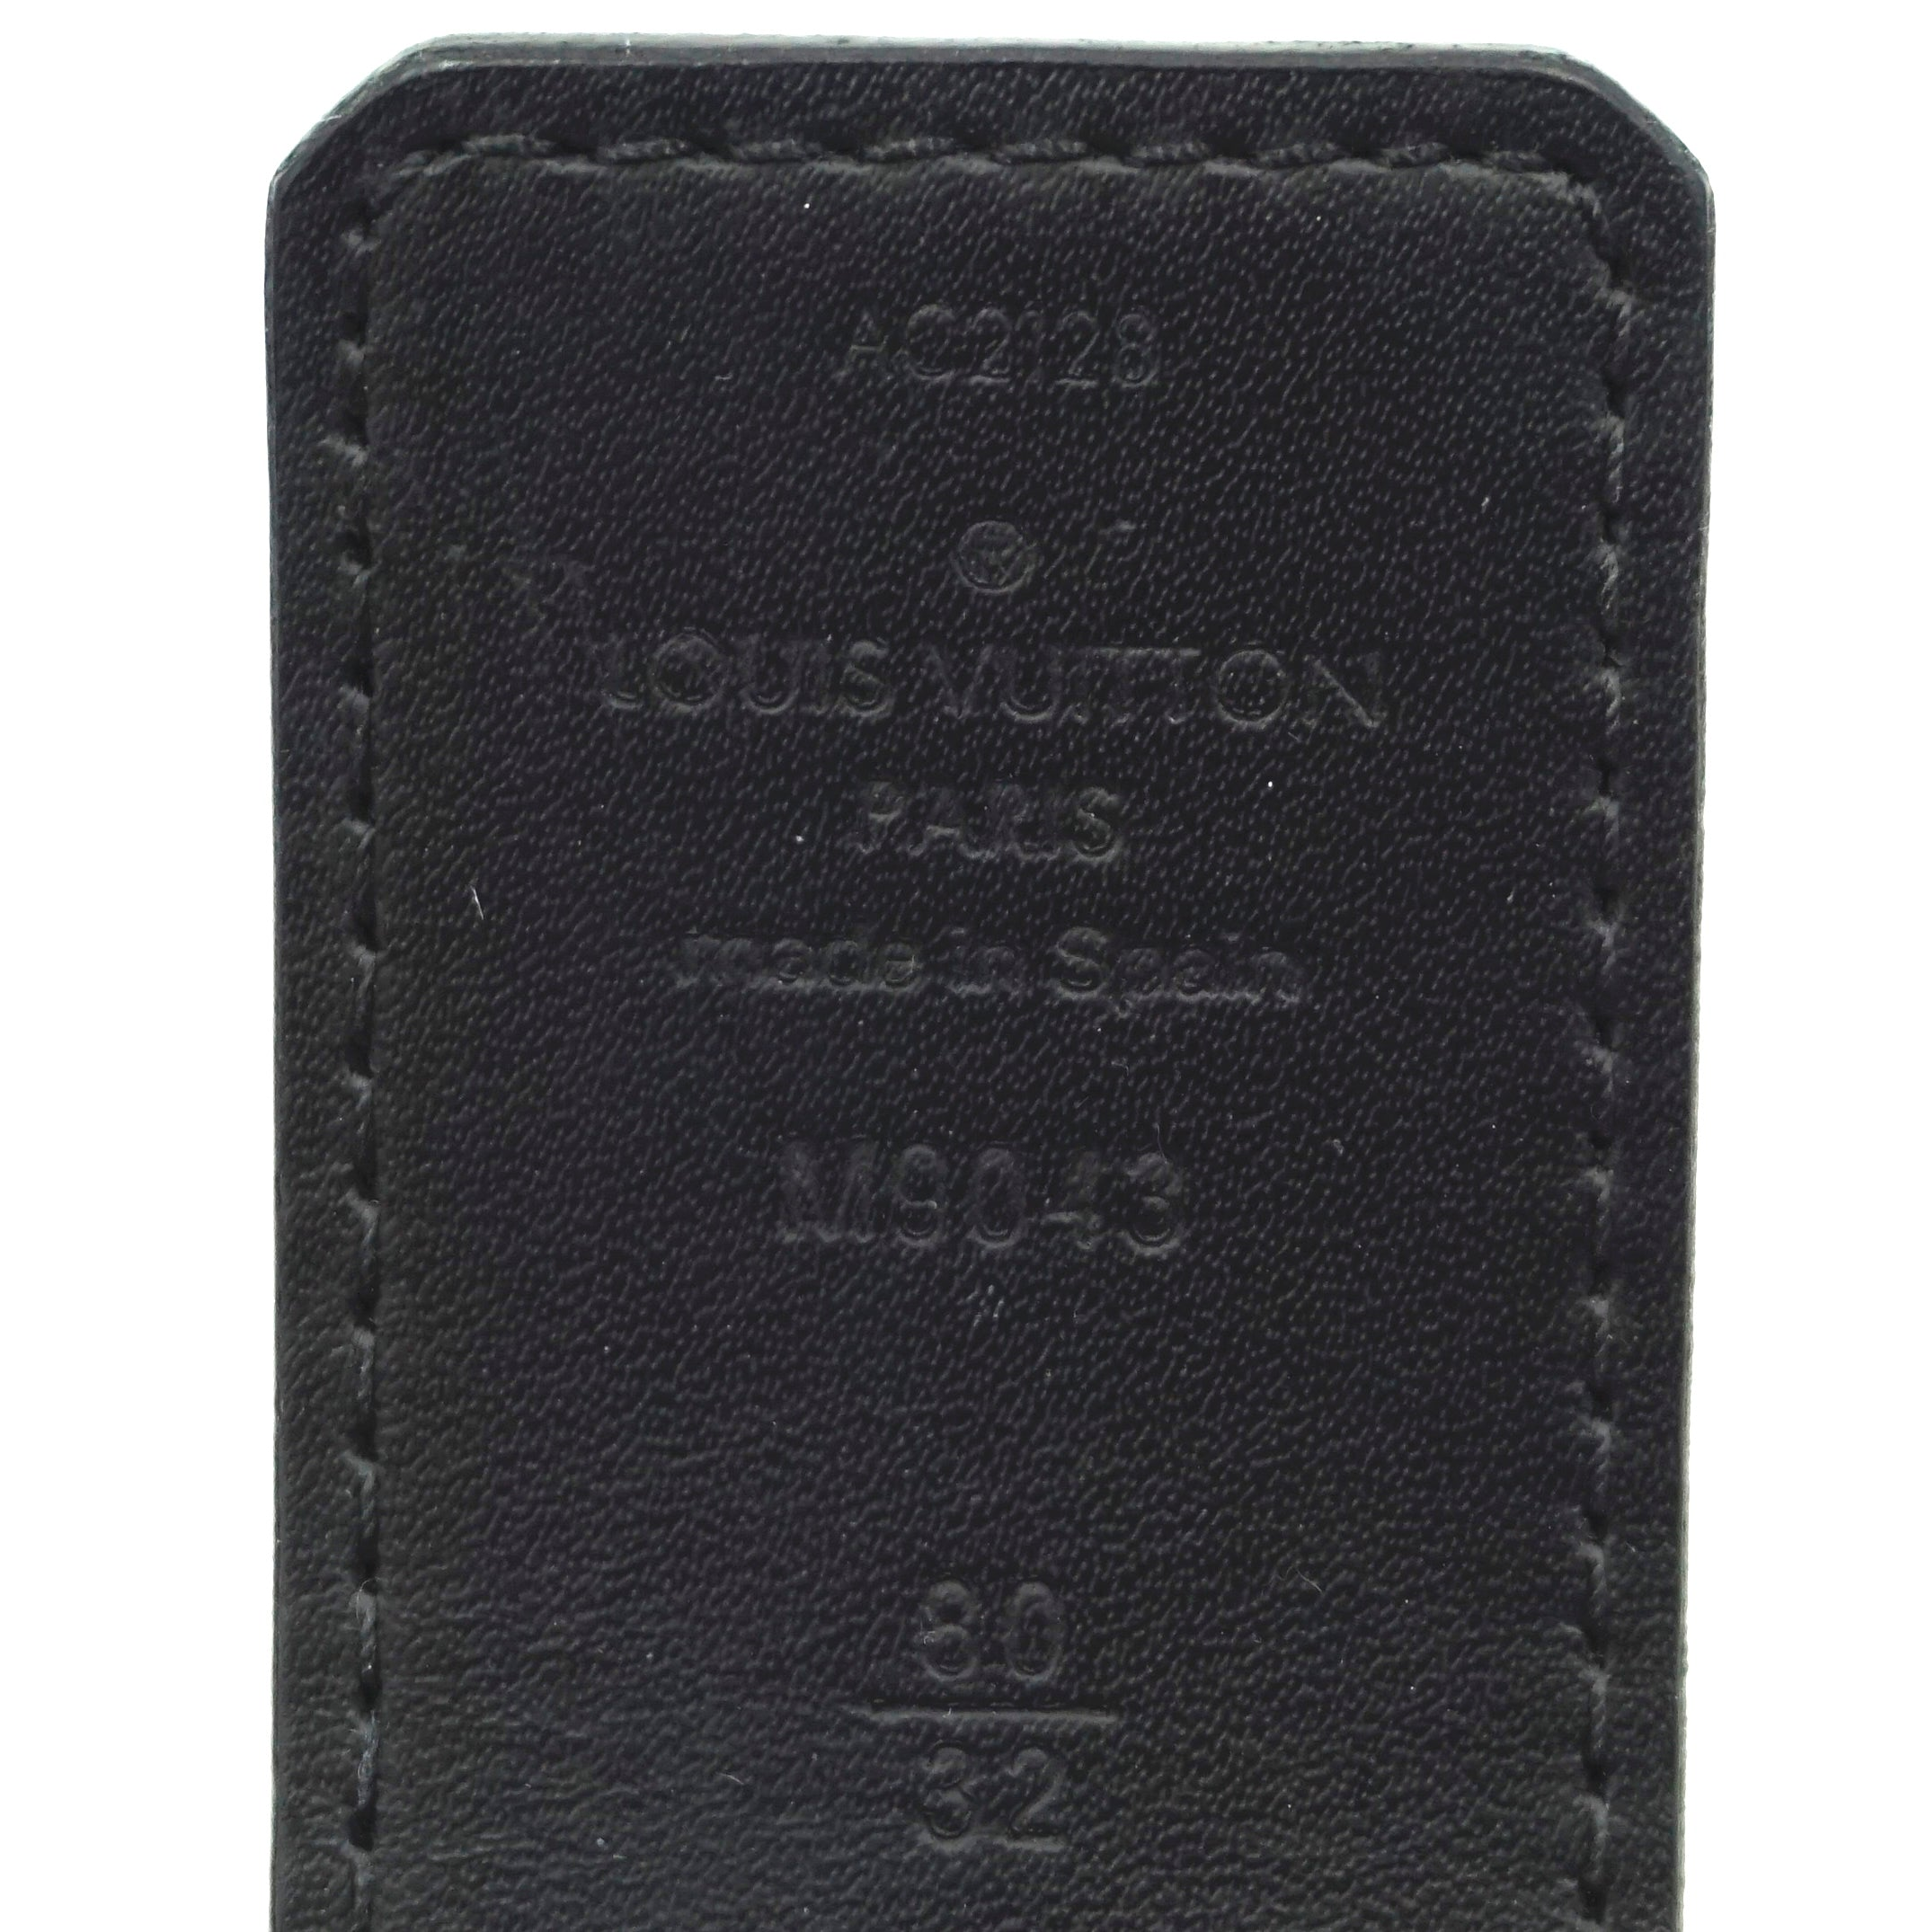 Louis Vuitton Damier Graphite 40mm LV Logo Silver Initials Belt Size 80/32